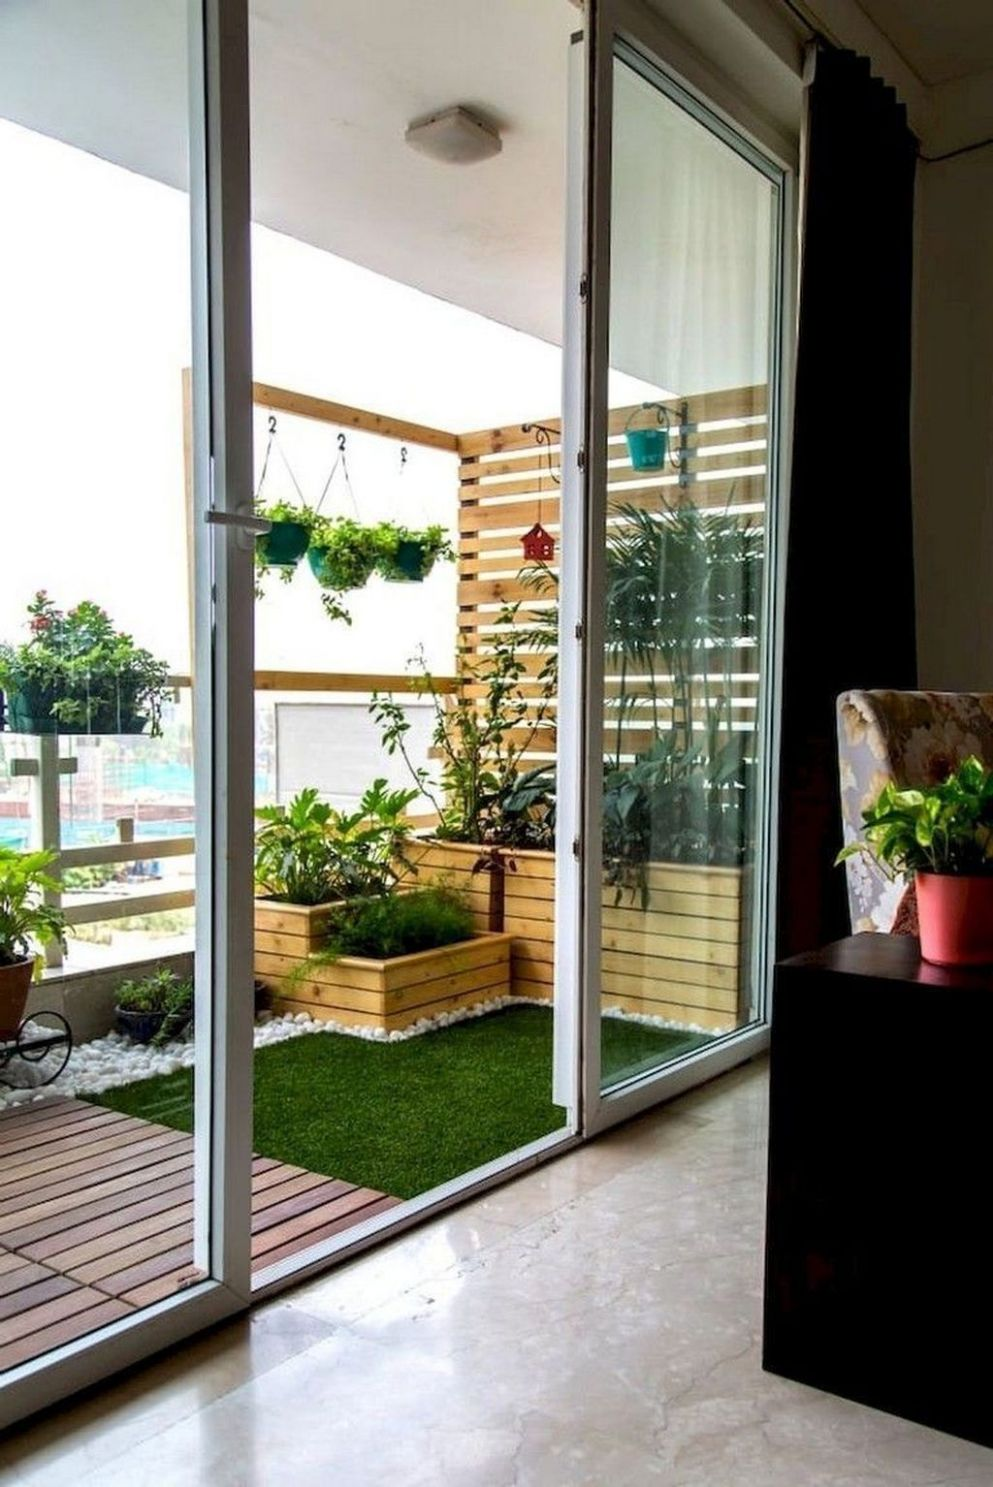 Inspiring Small Apartment Balcony Ideas You Will Love It in 8 ..